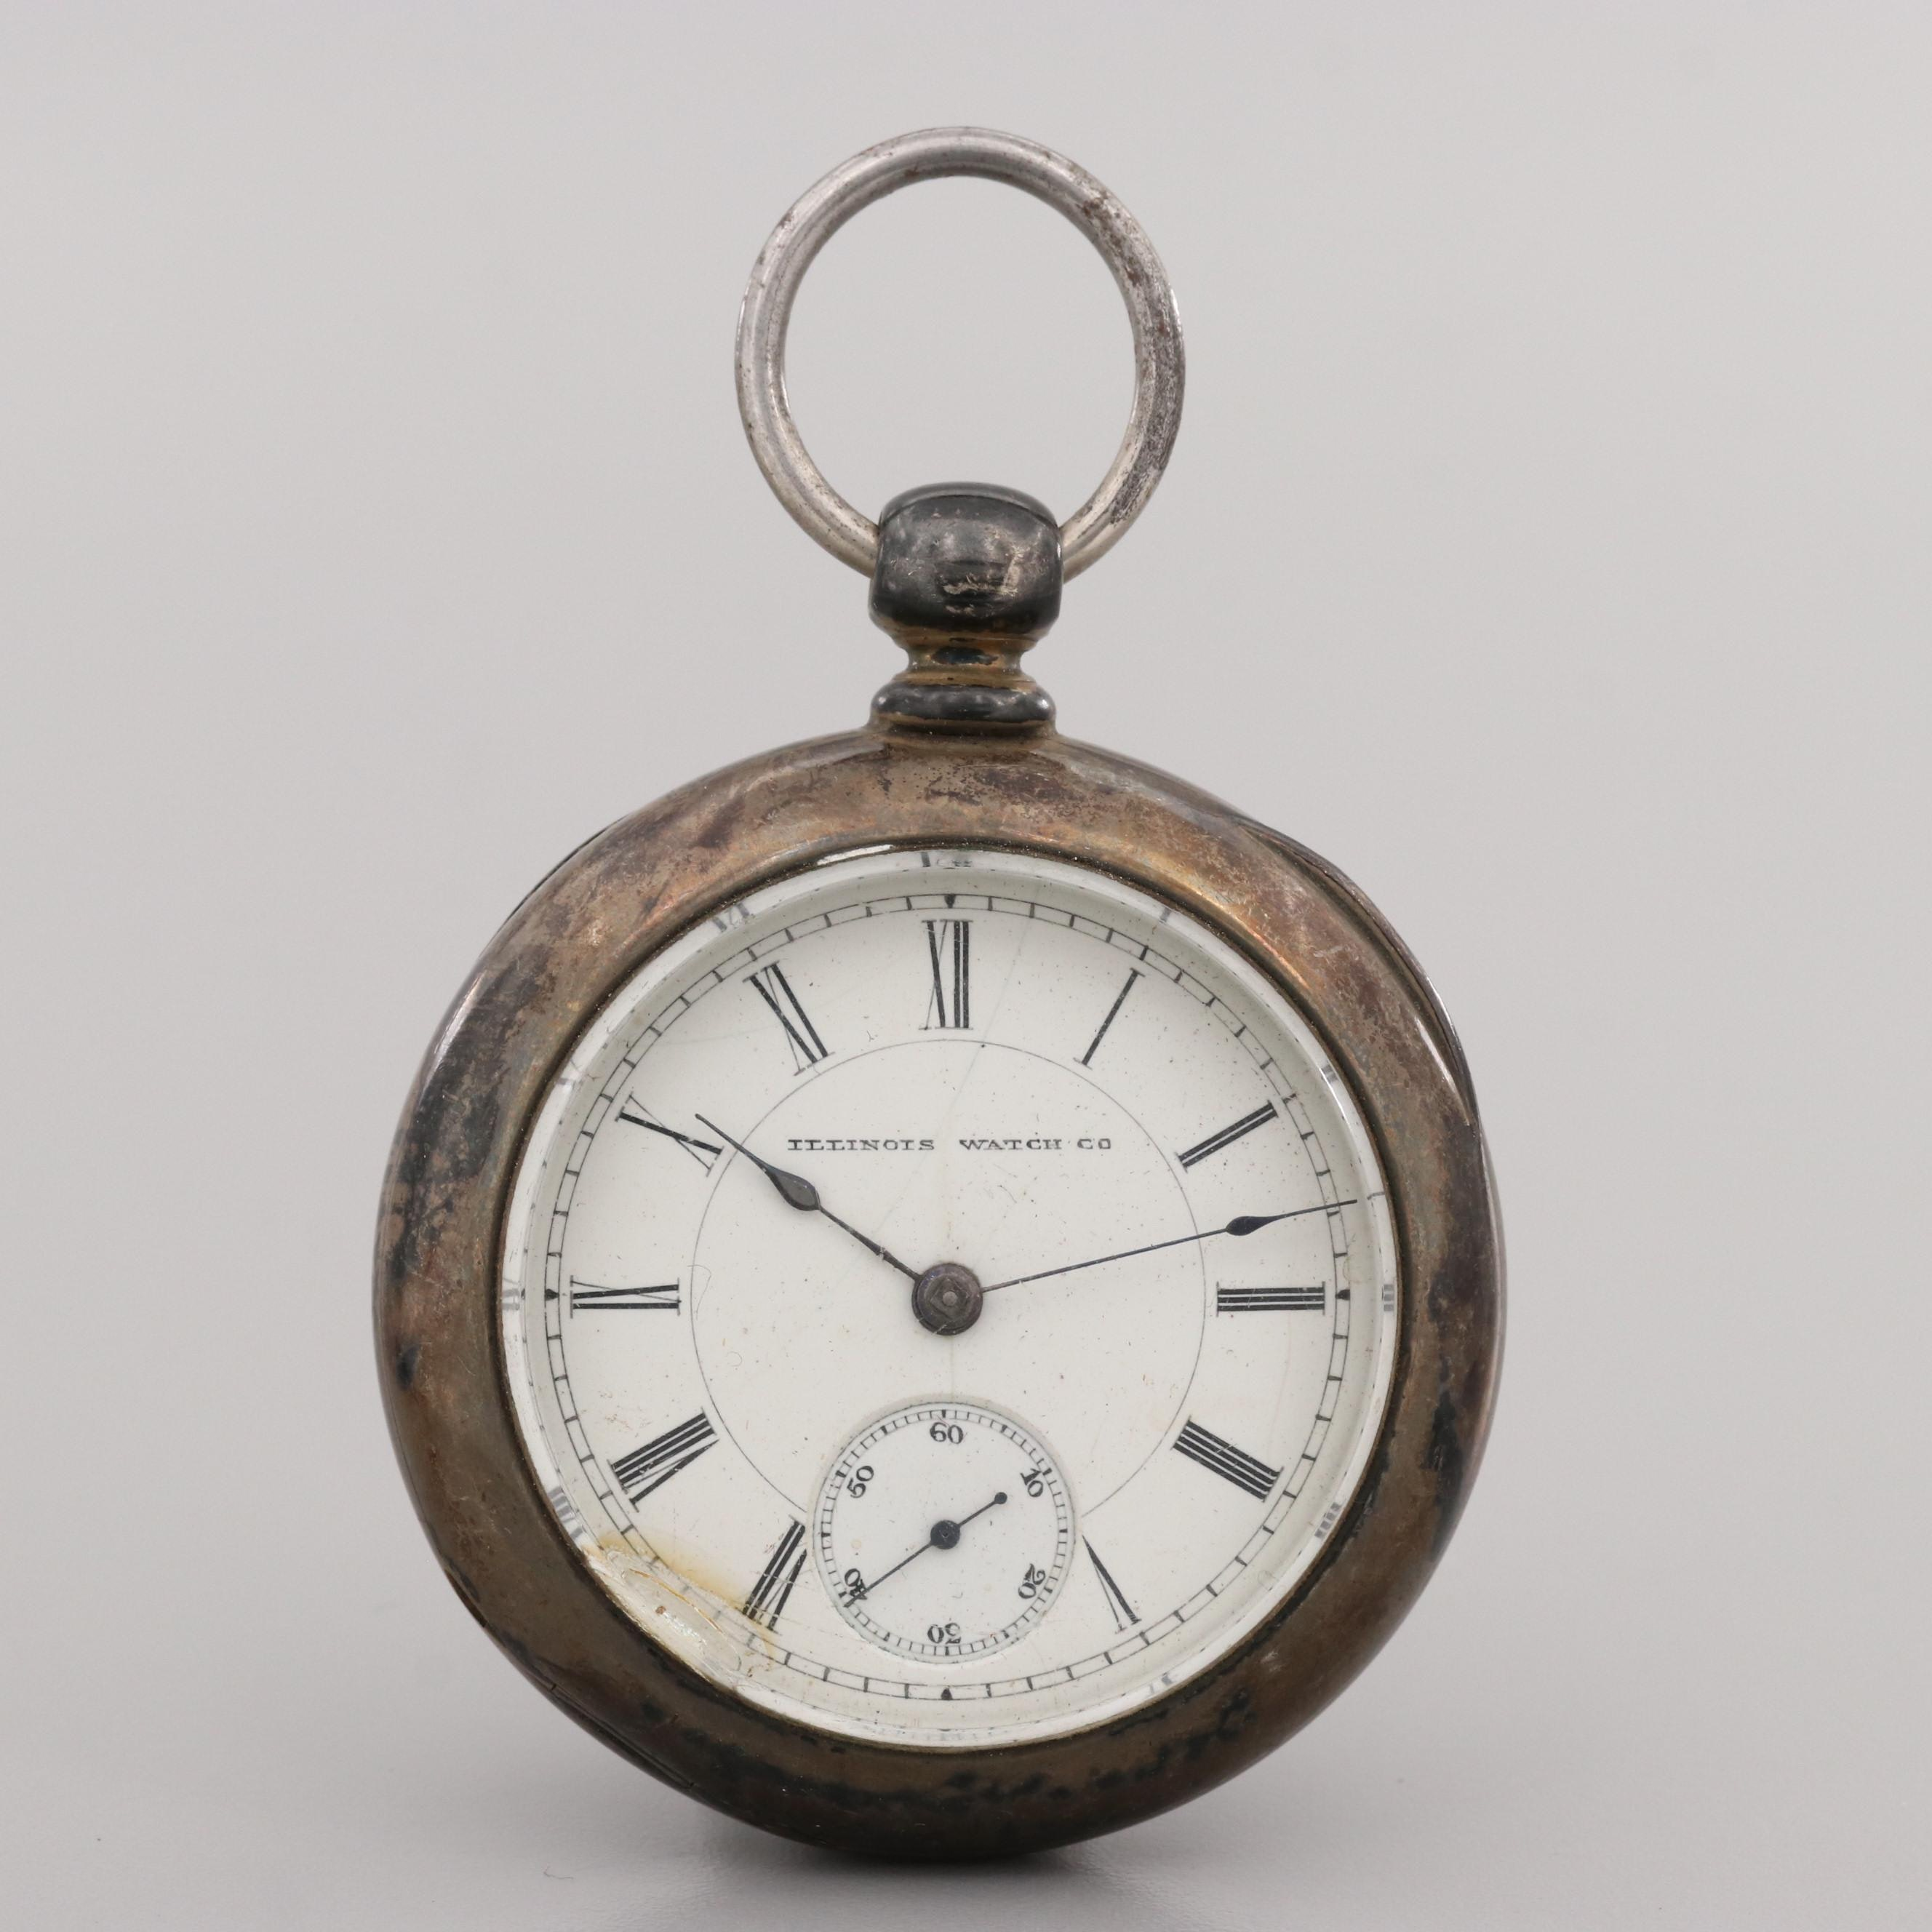 Antique Illinois Watch Co. Coin Silver Pocket Watch, 1887